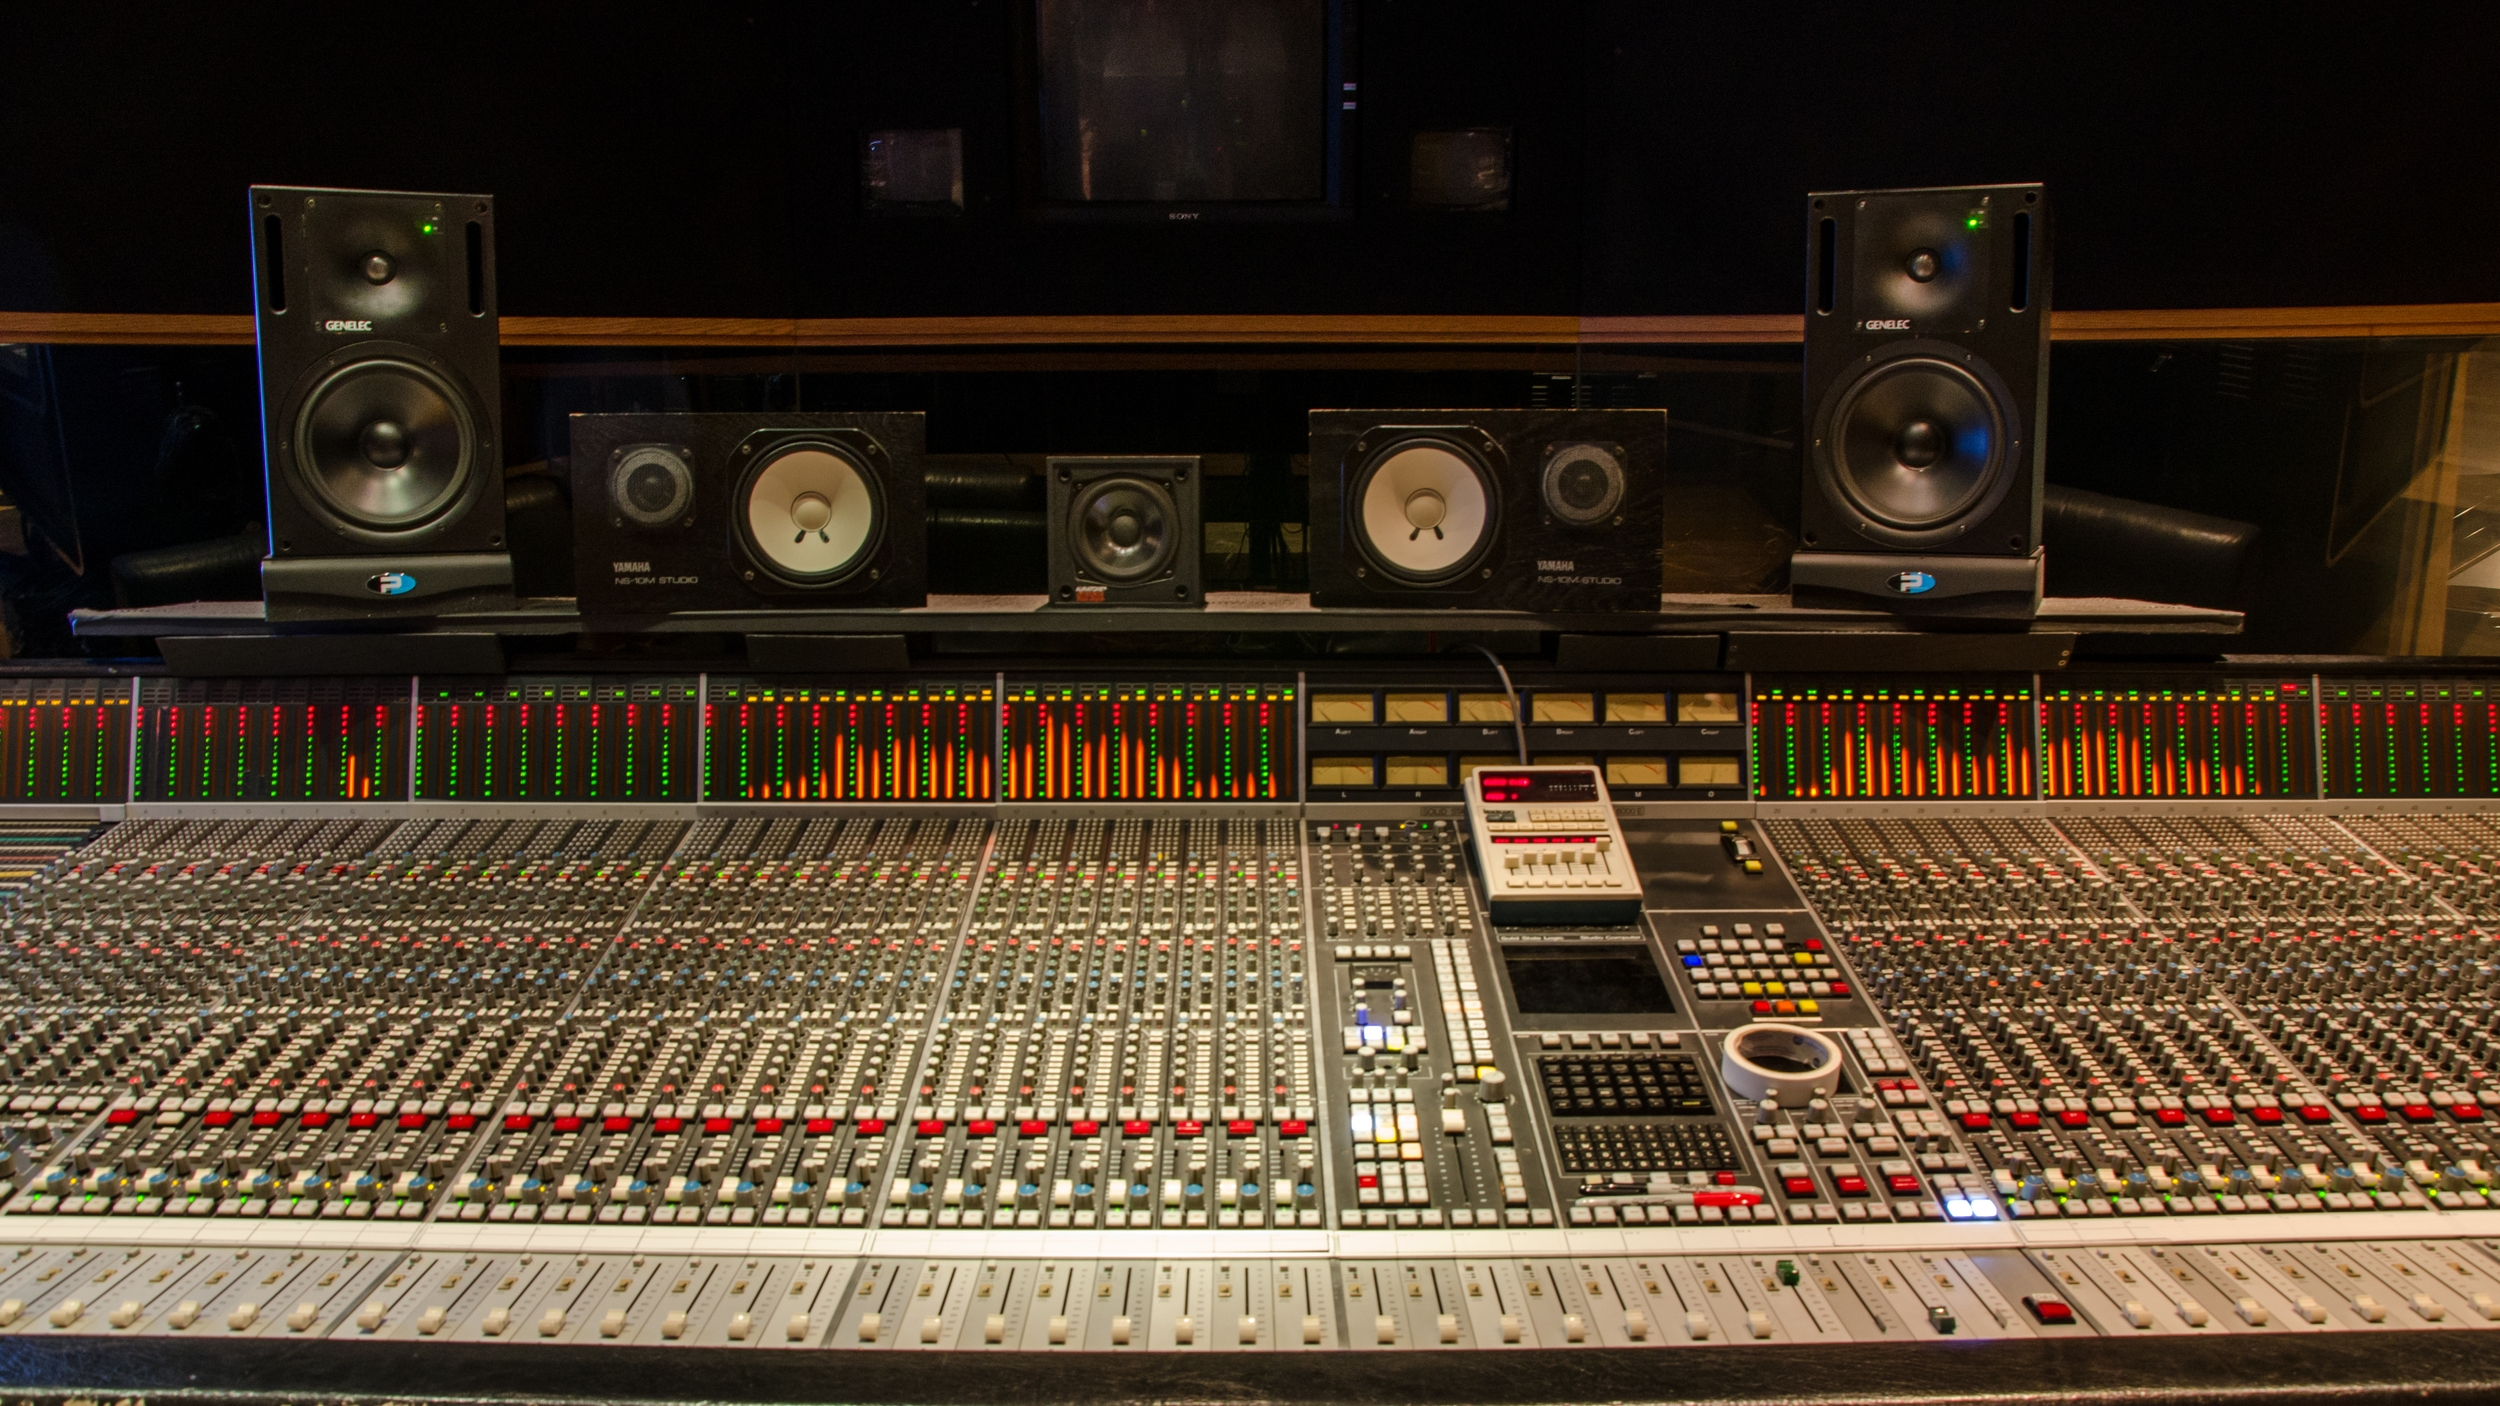 Mixing / Mastering - Spots, films, shorts, multimedia, all genres of music - we mix it all! Our experienced staff has access to the best in modern and vintage equipment in accurate rooms to ensure that your project sounds its best.